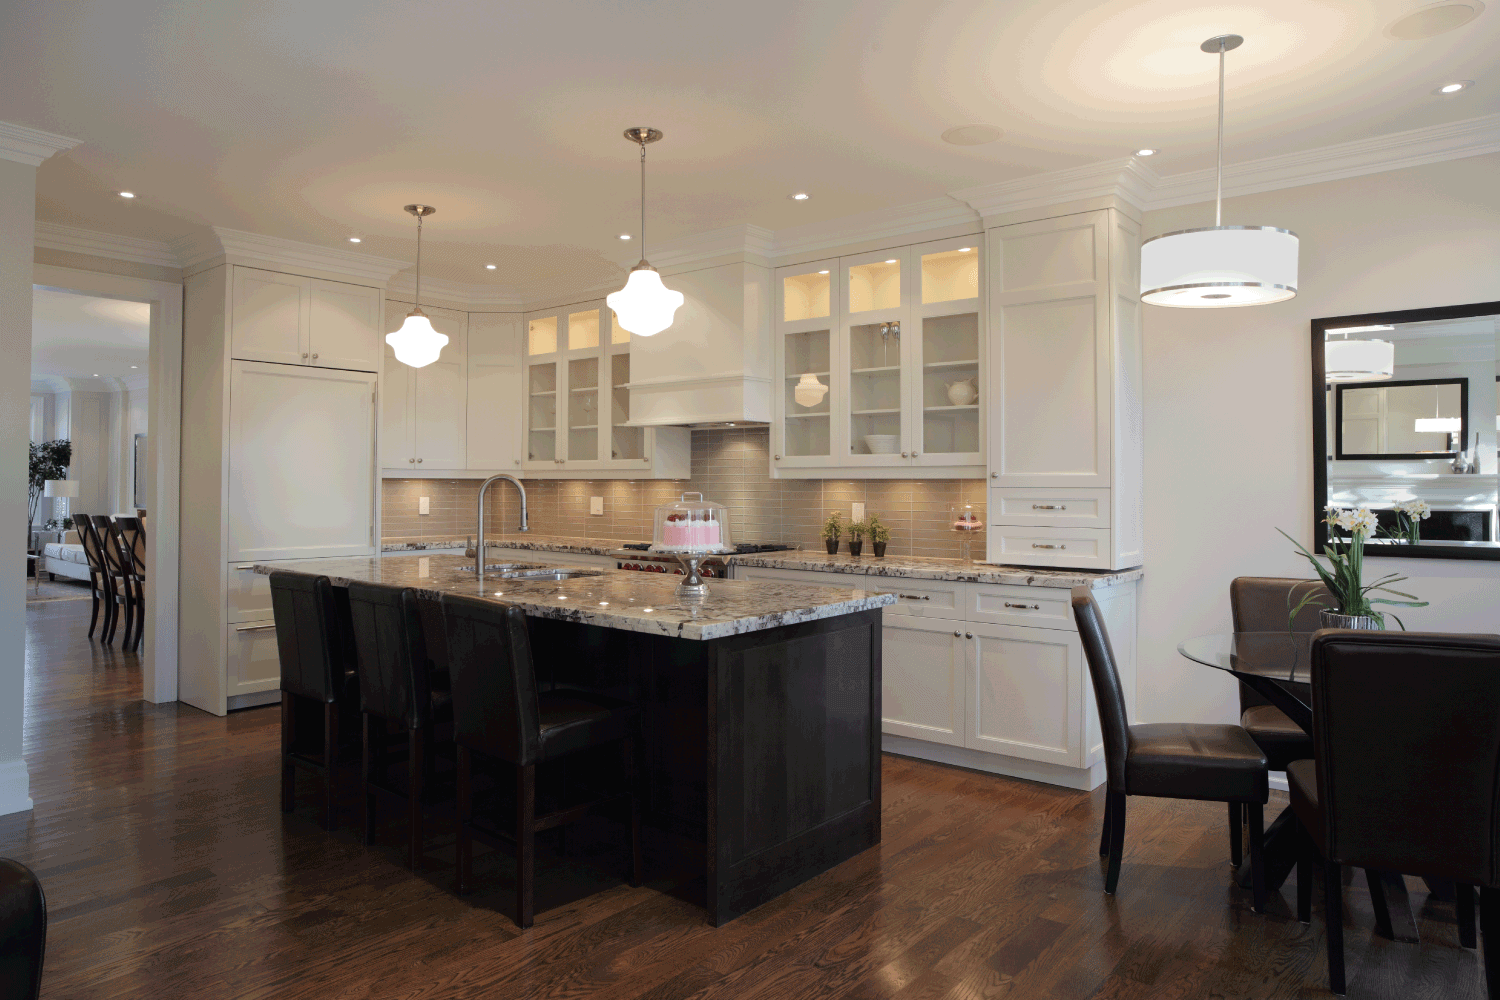 New Luxury Home Kitchen and breakfast room. white and black concept